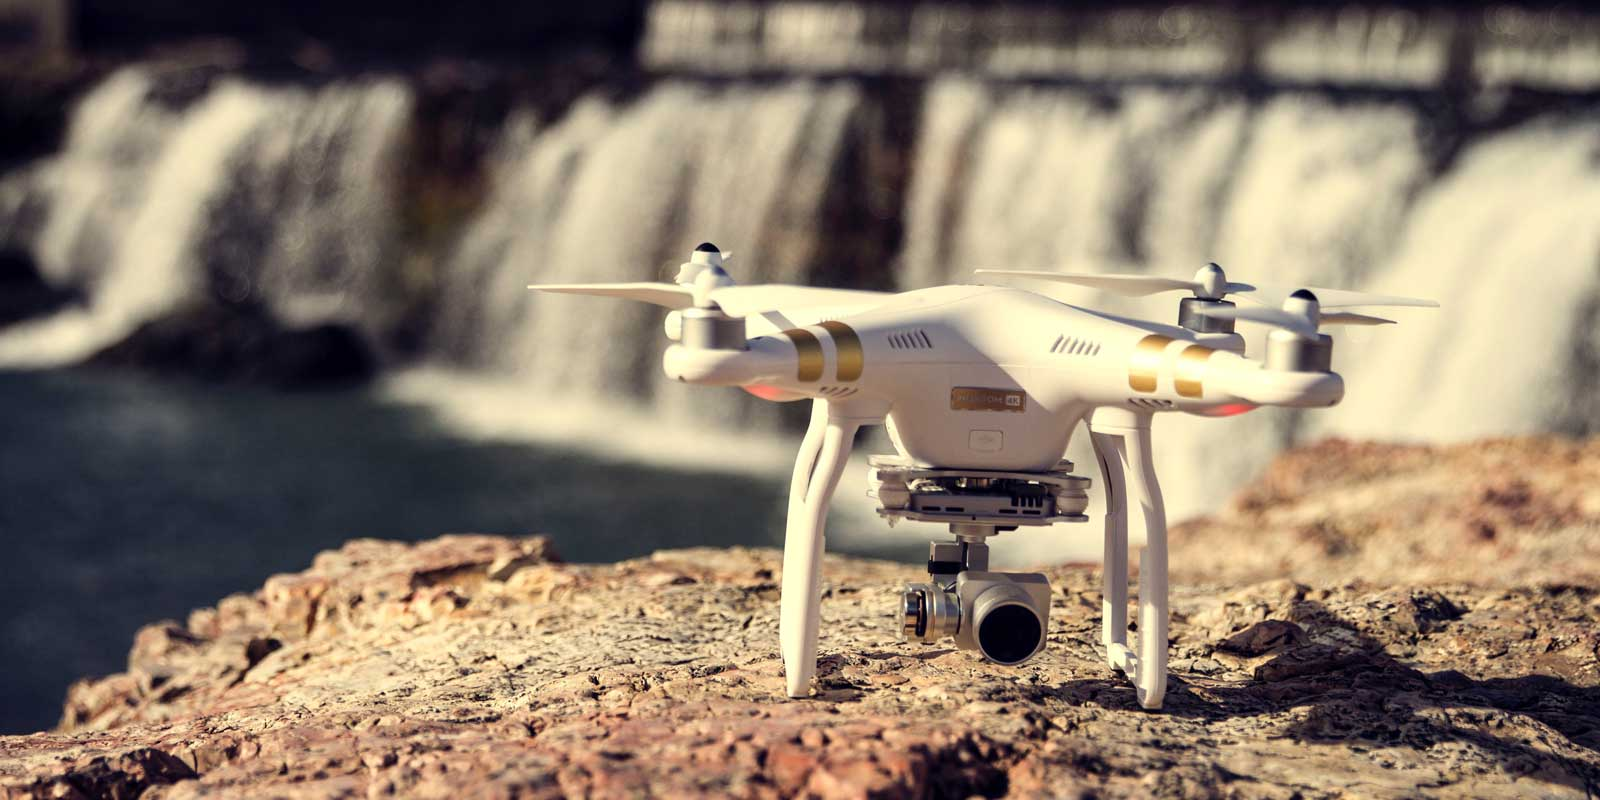 Drones are a no-go at Disney World. Find out what else is banned and what is allowed when it comes to cameras and accessories at Disney World.